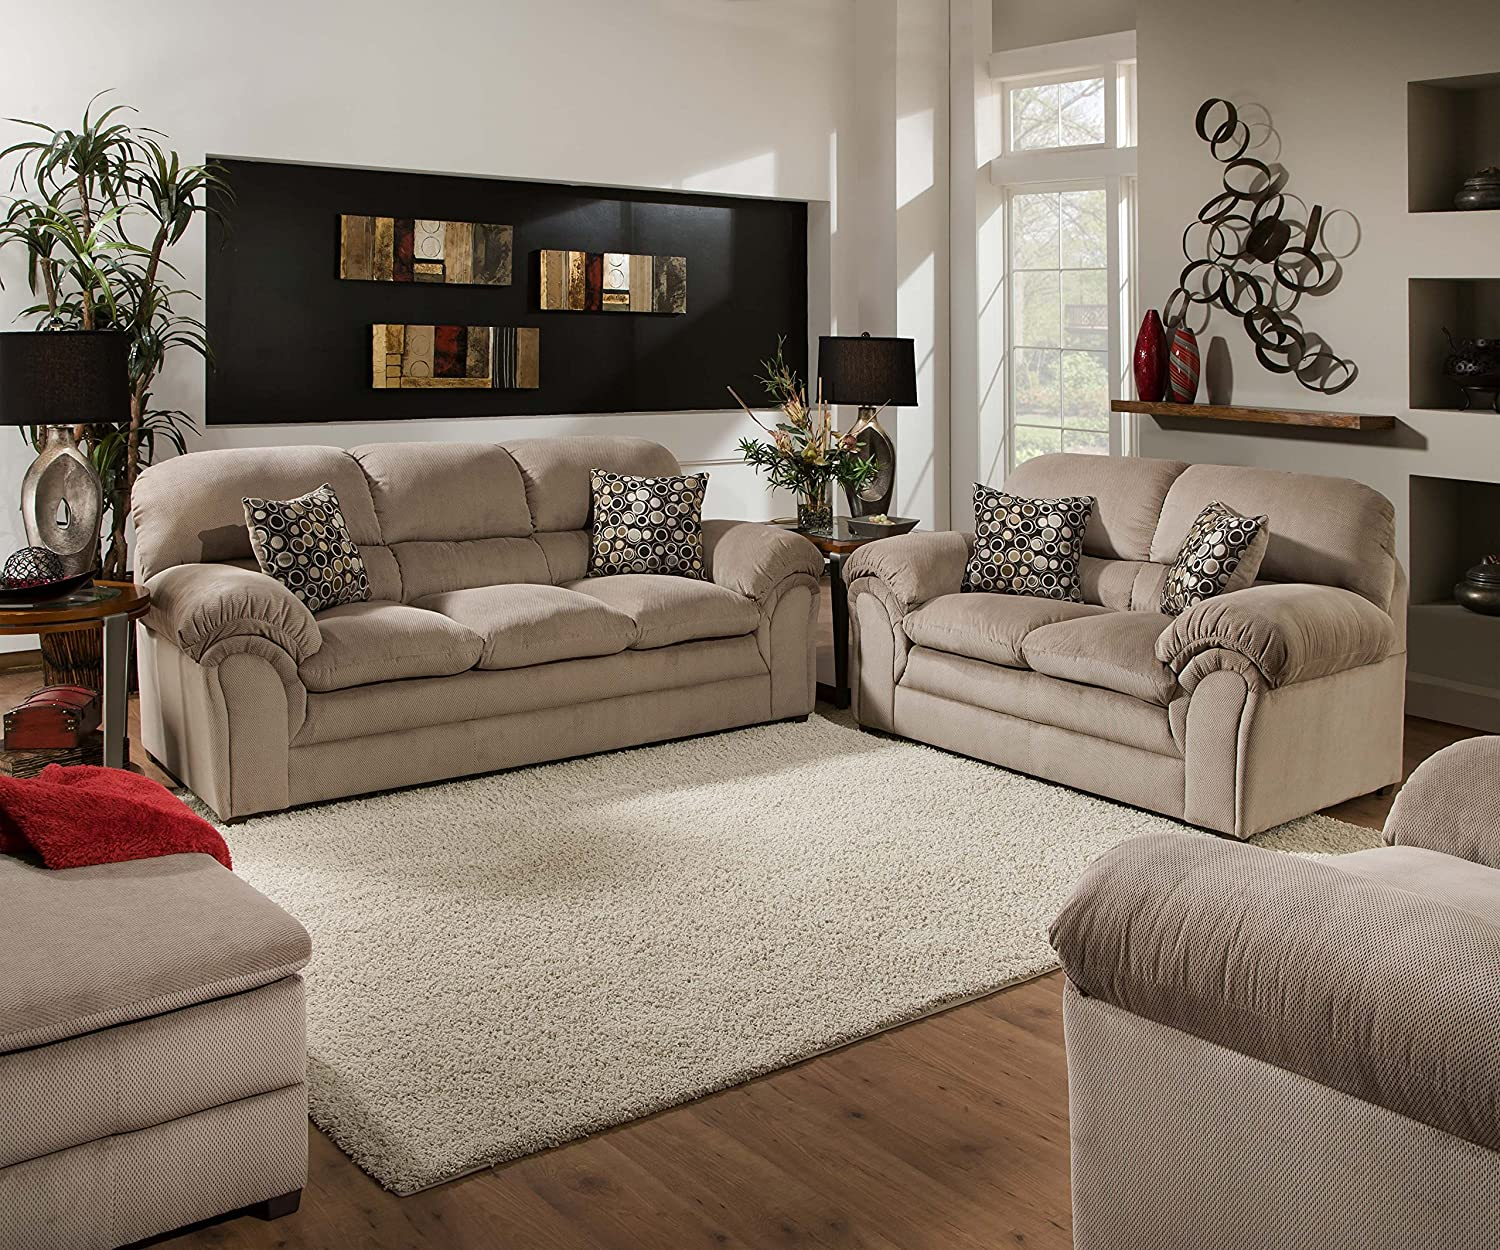 Simmons furniture sofa sets sofa menzilperde net for Simmons living room furniture